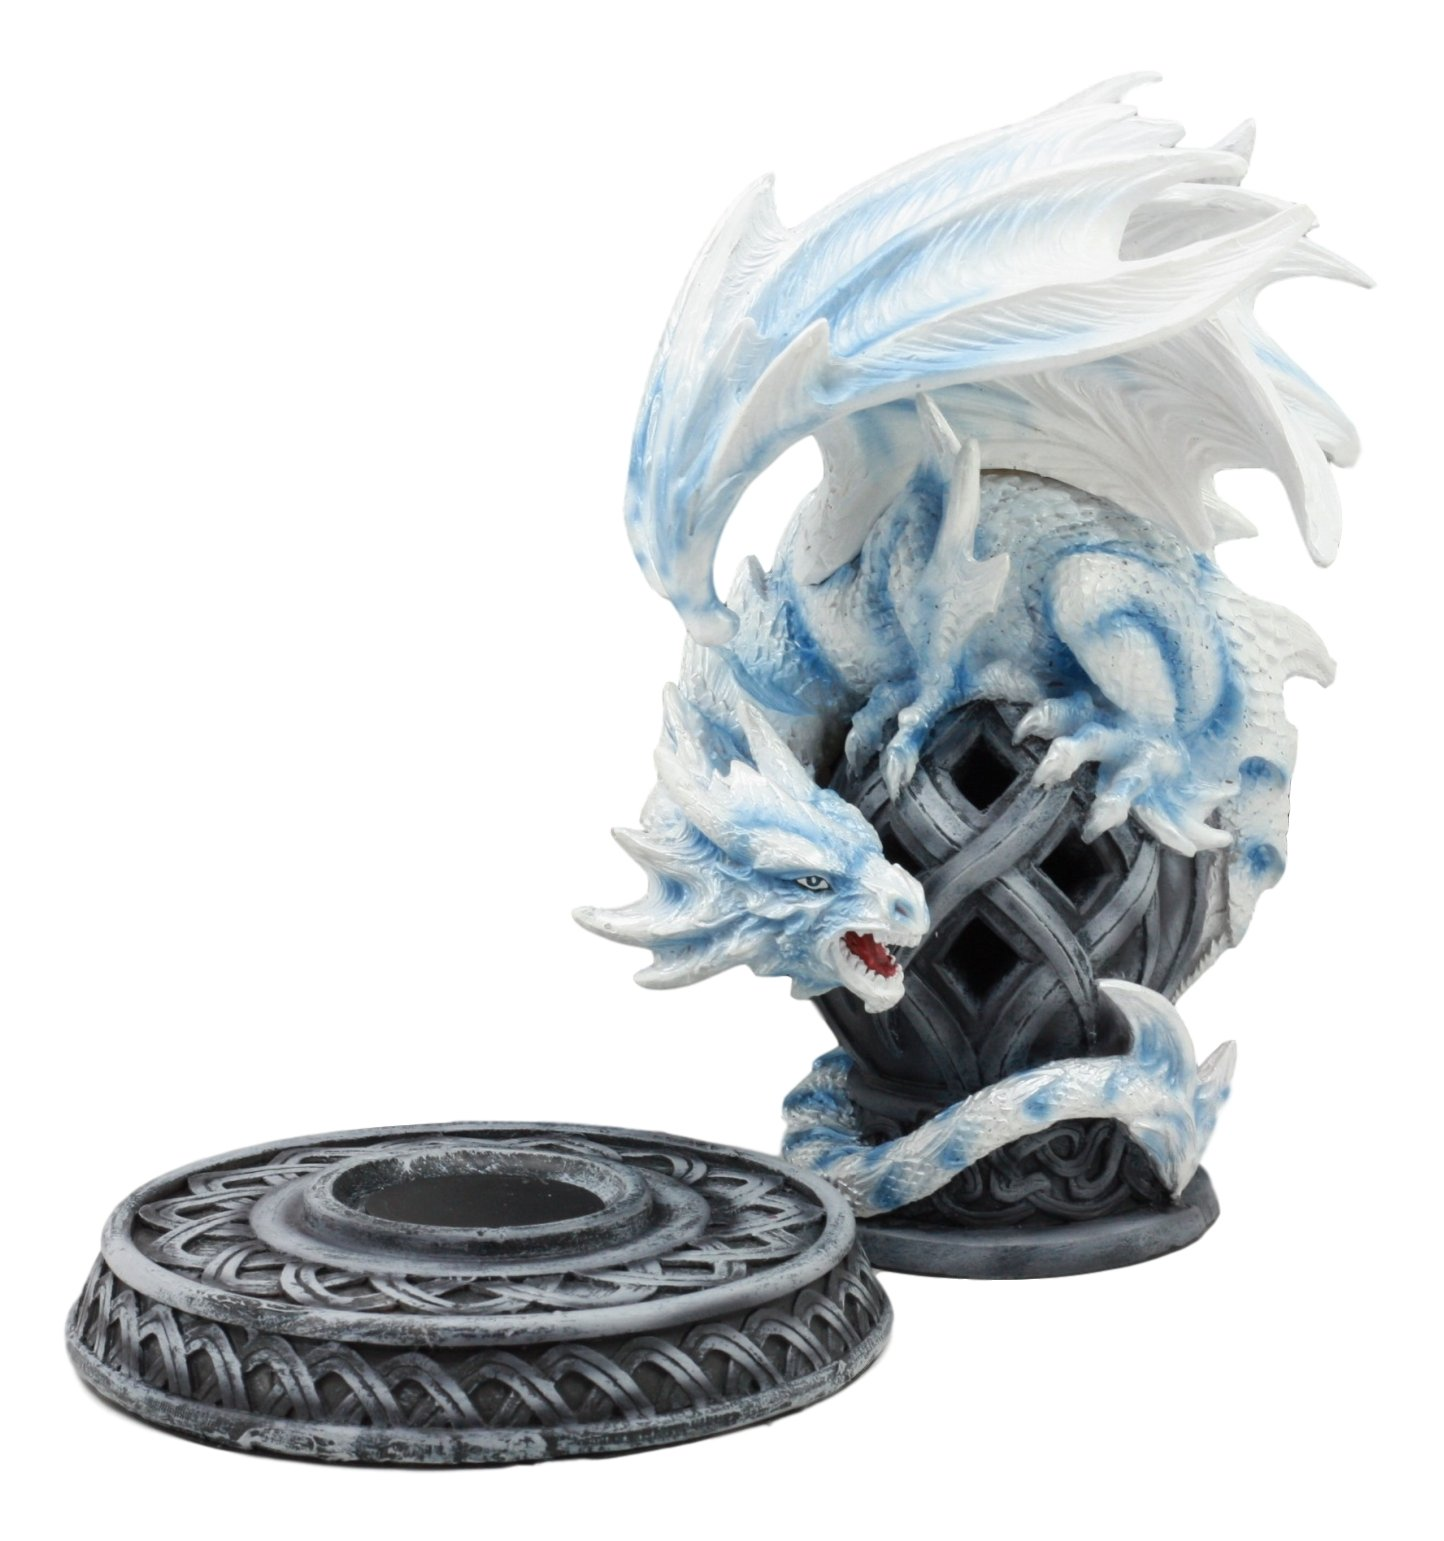 Ebros Guardian of Celtic Tomb White Icycle Dragon Backflow Cone Incense Holder Statue 8.5''Tall Fantasy Icelandic Dragon LED Tea Light Candle Holder Figurine by Ebros Gift (Image #7)